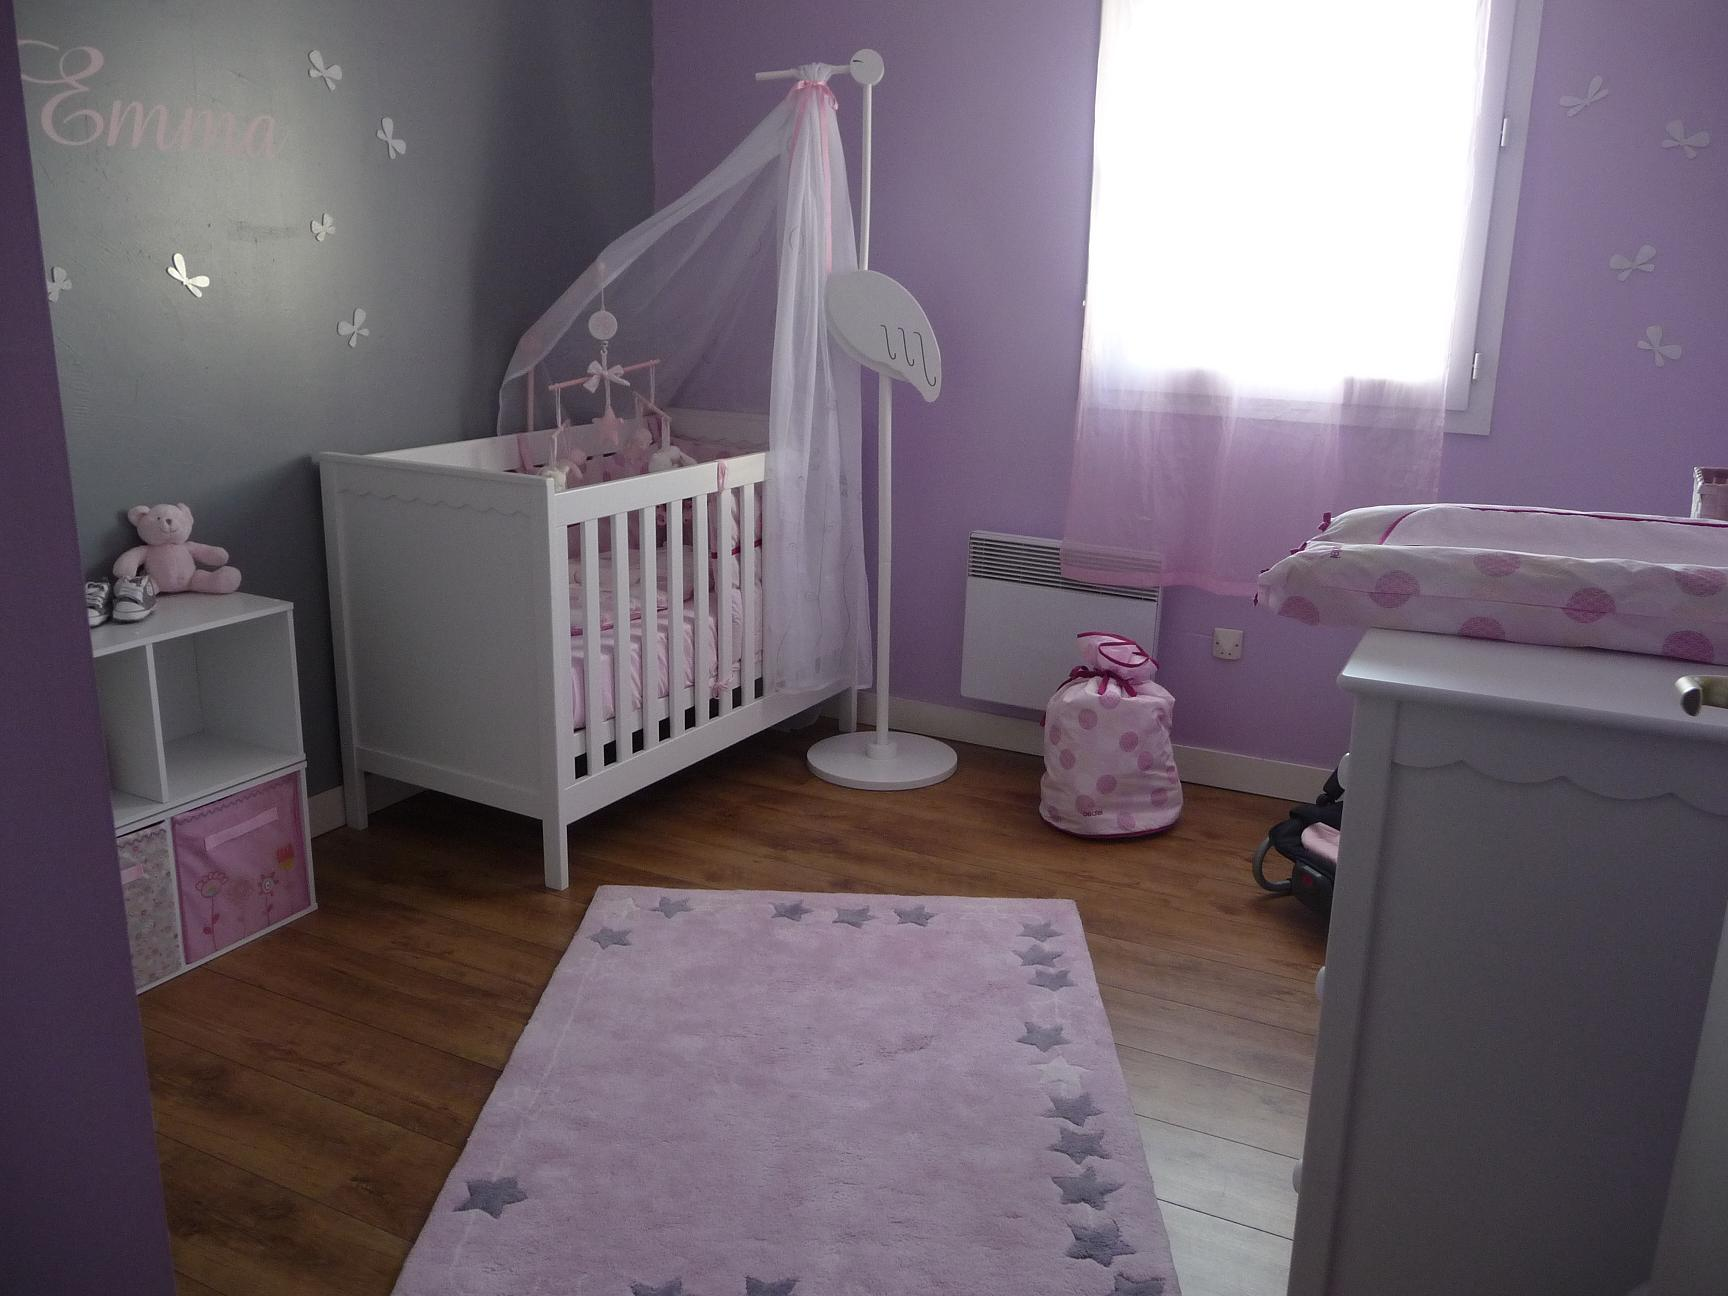 Idee deco chambre bebe fille - bebe confort axiss